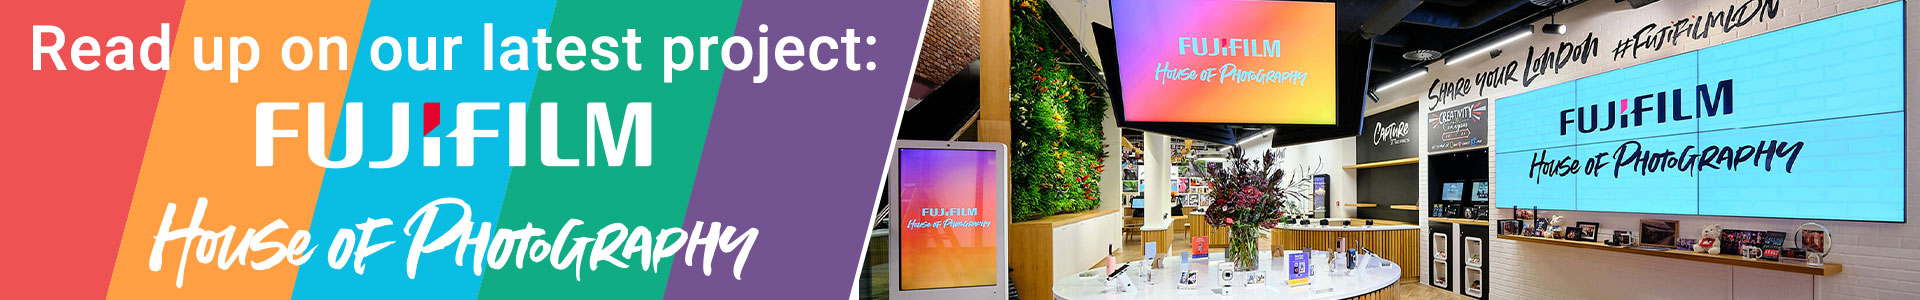 Fujifilm House of Photography Interactive Software Case Study